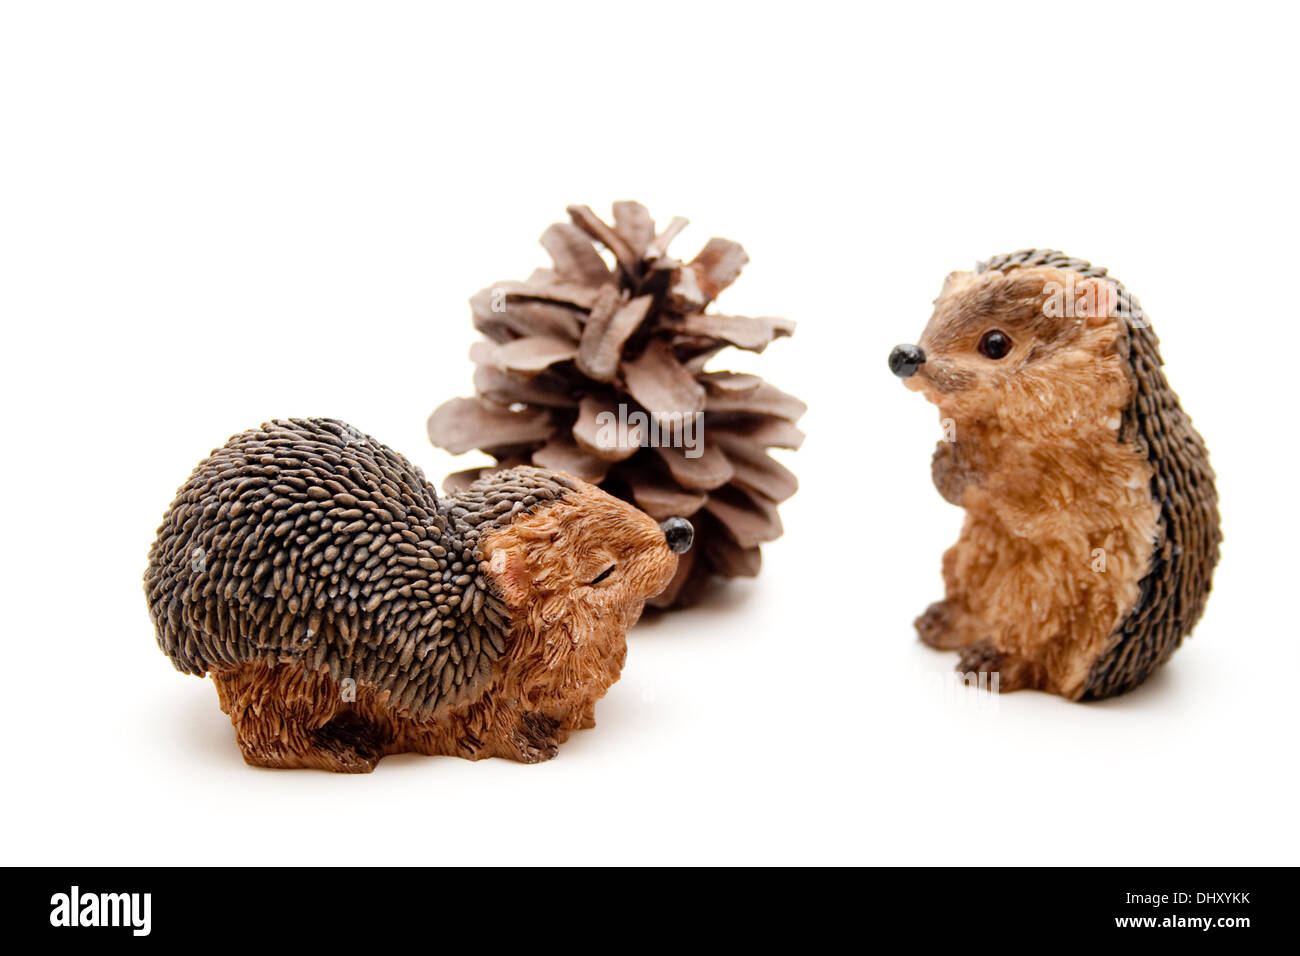 Hedgehog figure with pine plug - Stock Image